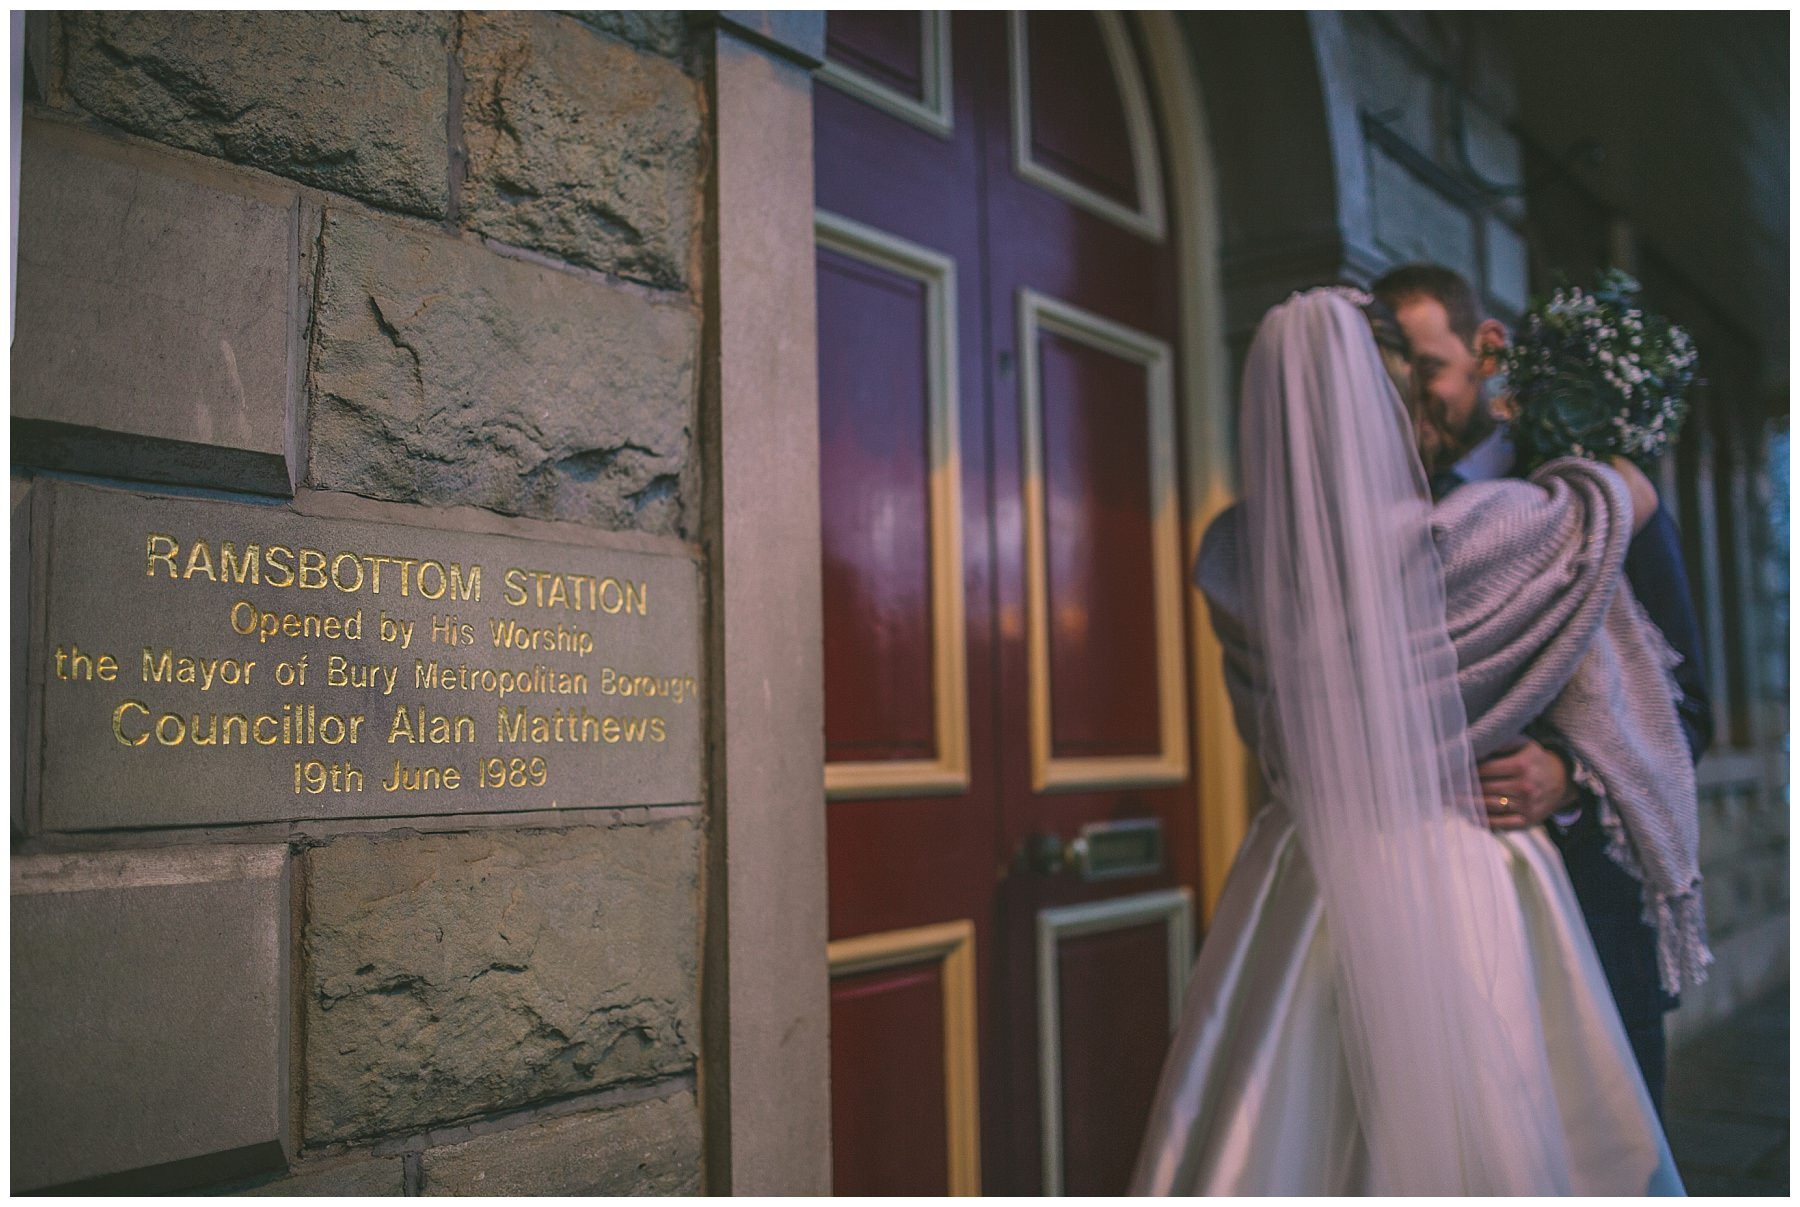 Wedding photography taken at Ramsbottom train station